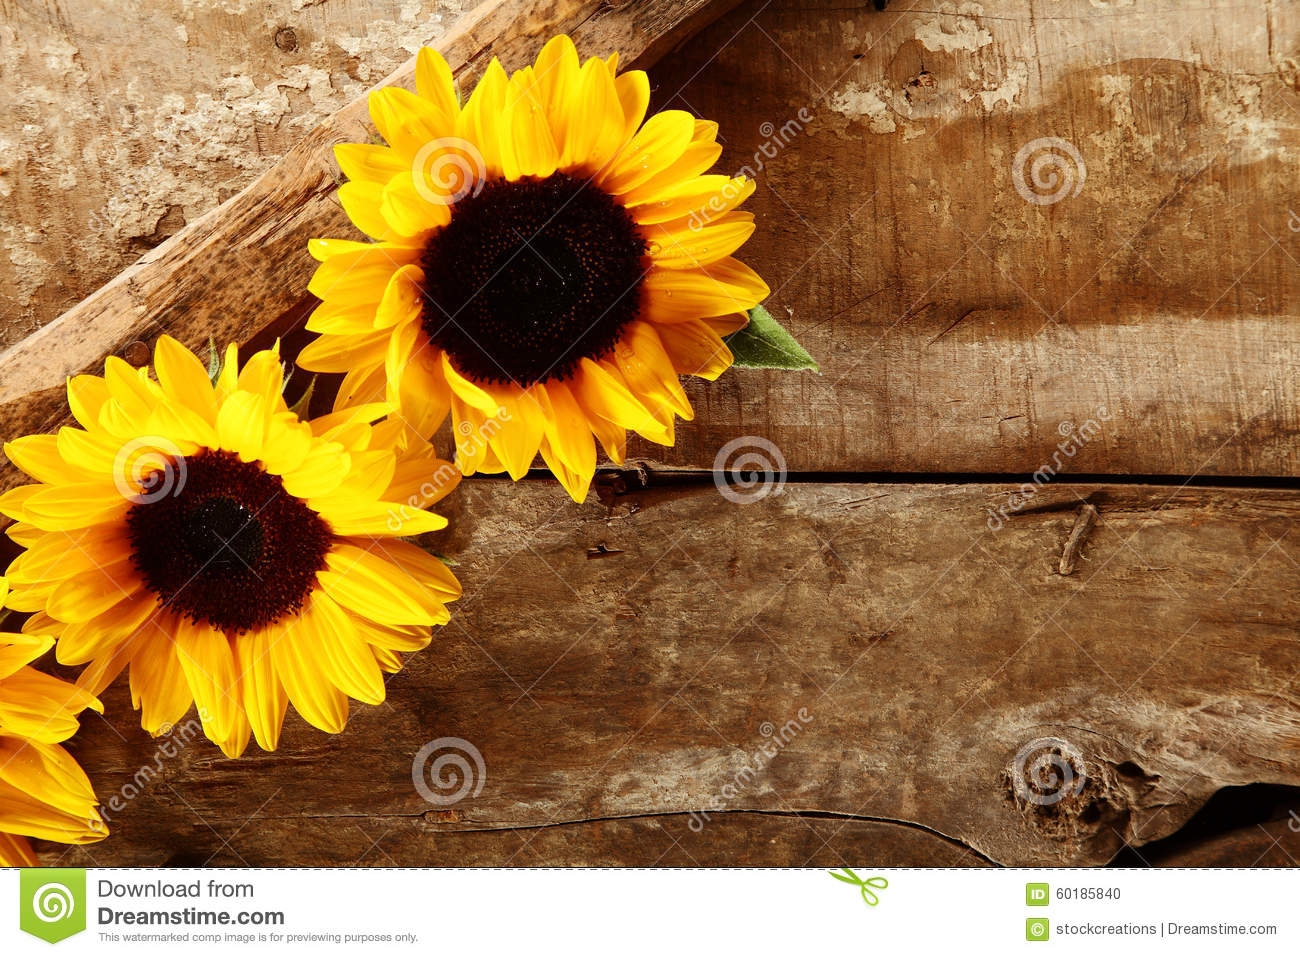 background with sunflowers daisies cornflowers and ears